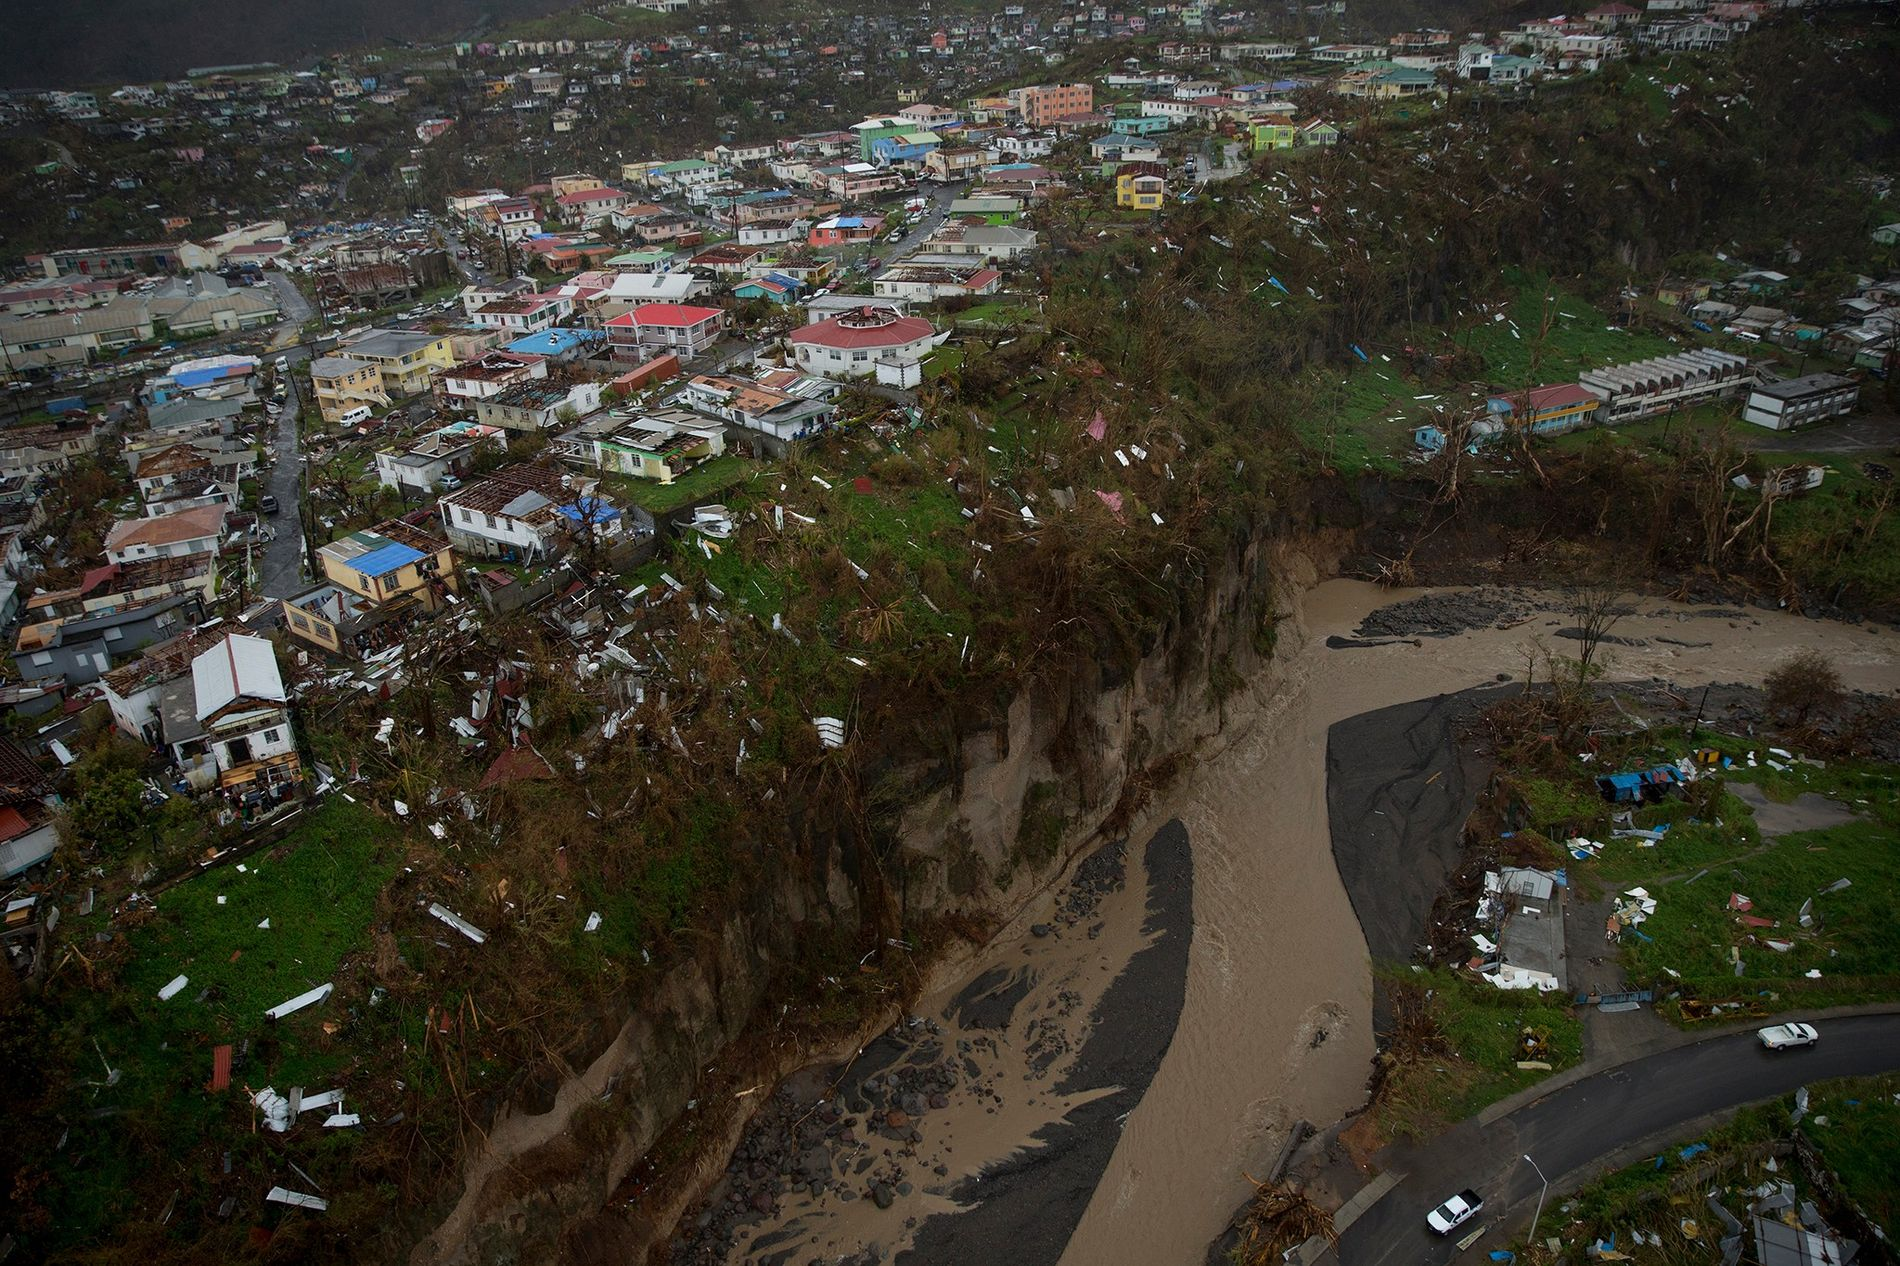 Ten days after Hurricane Maria struck Dominica, aerial photos showed devastation so complete, it was routinely ...